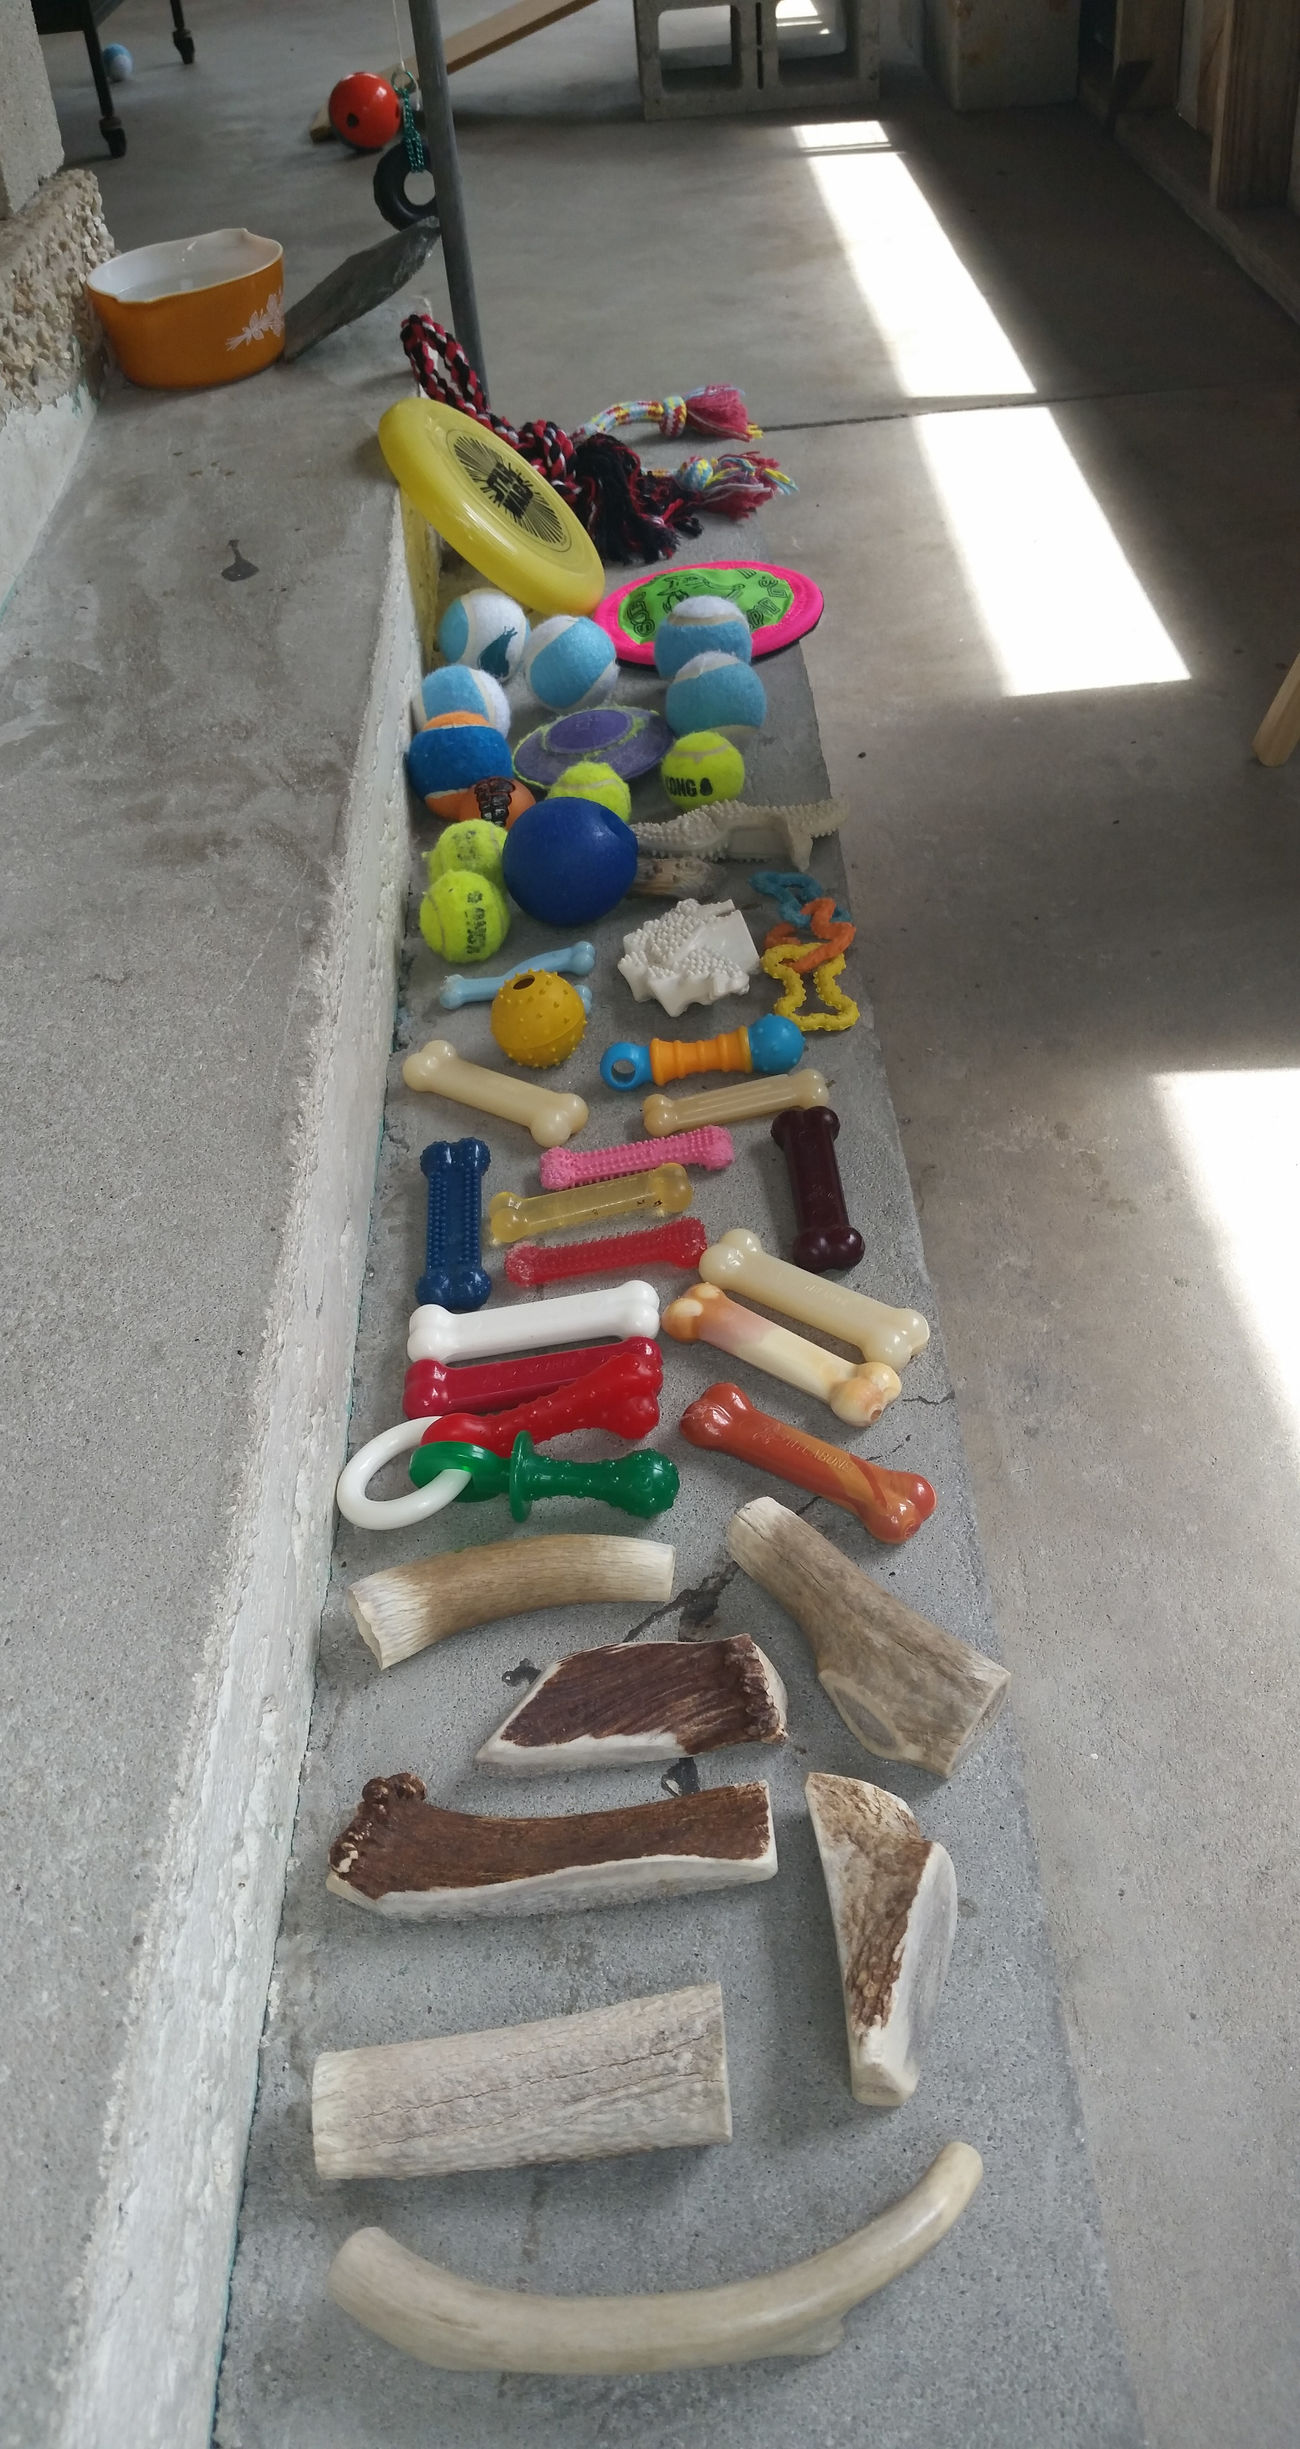 Dog Toys Multi Colored Front Porch Step My Dogs Are Cooler Than Your Kids Live Oak Animal Hospital Odie Cu-Jose Spoiled Dog Chihuahualife Chihuahuas Of Eyeem Chihuahua Puppy Rat Terrier Dog Named Kat Kilo